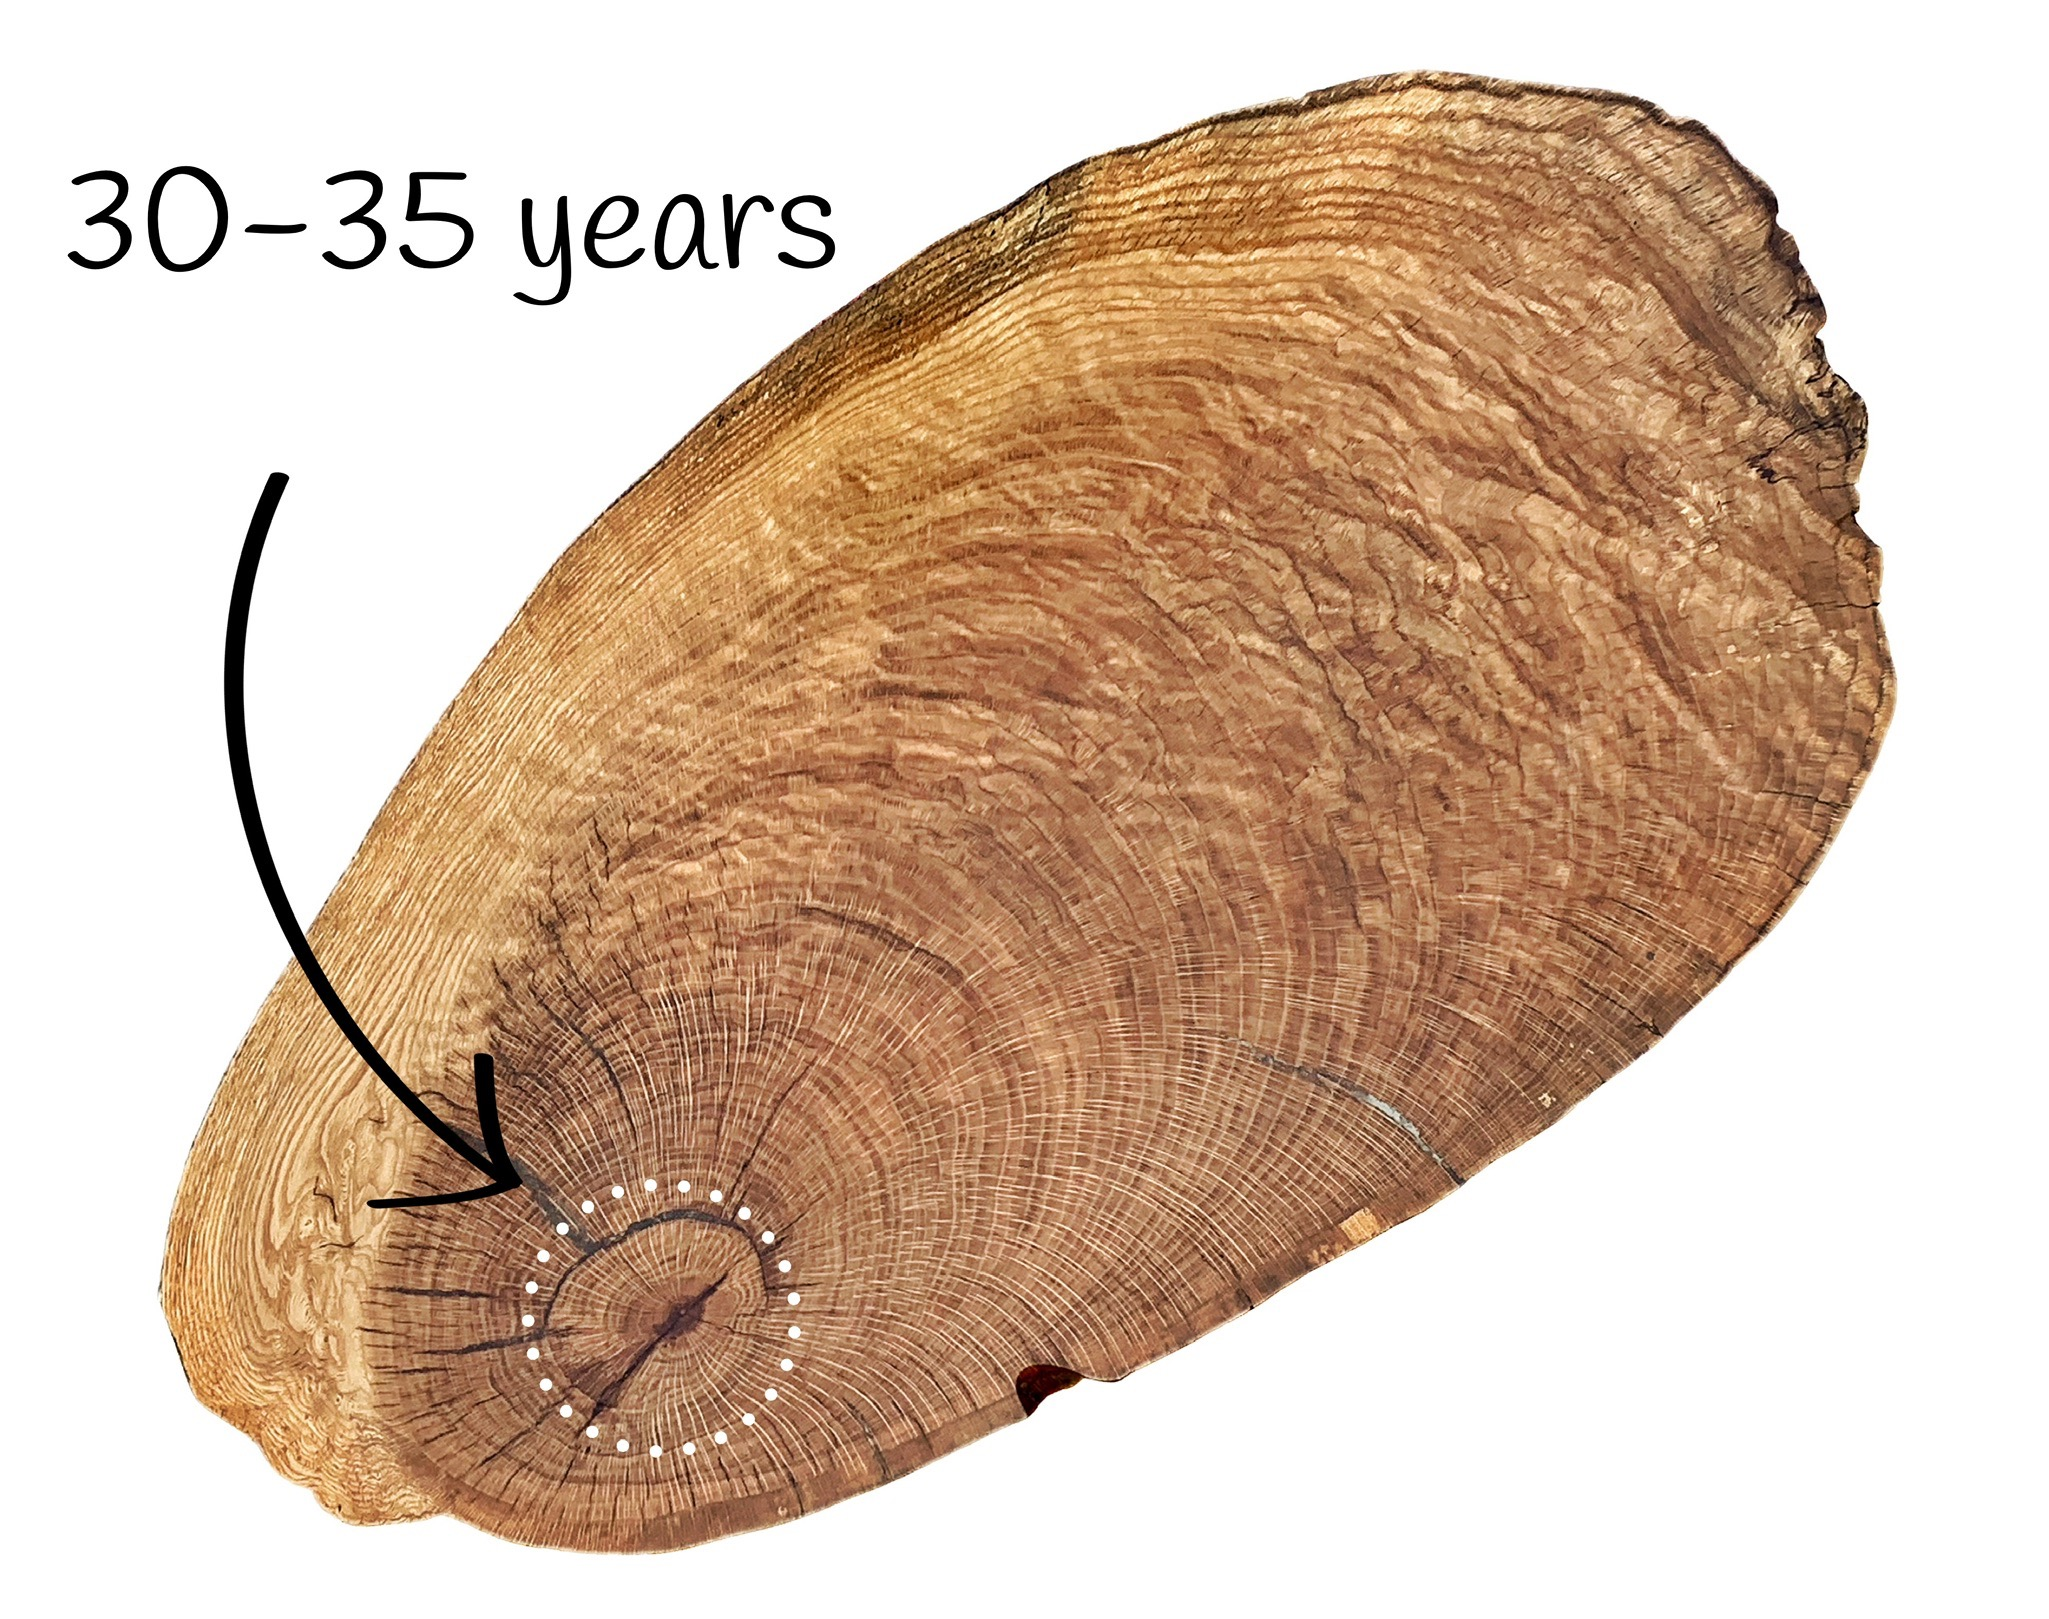 Figure 1 : area within the circle represents 30-35 years of growth